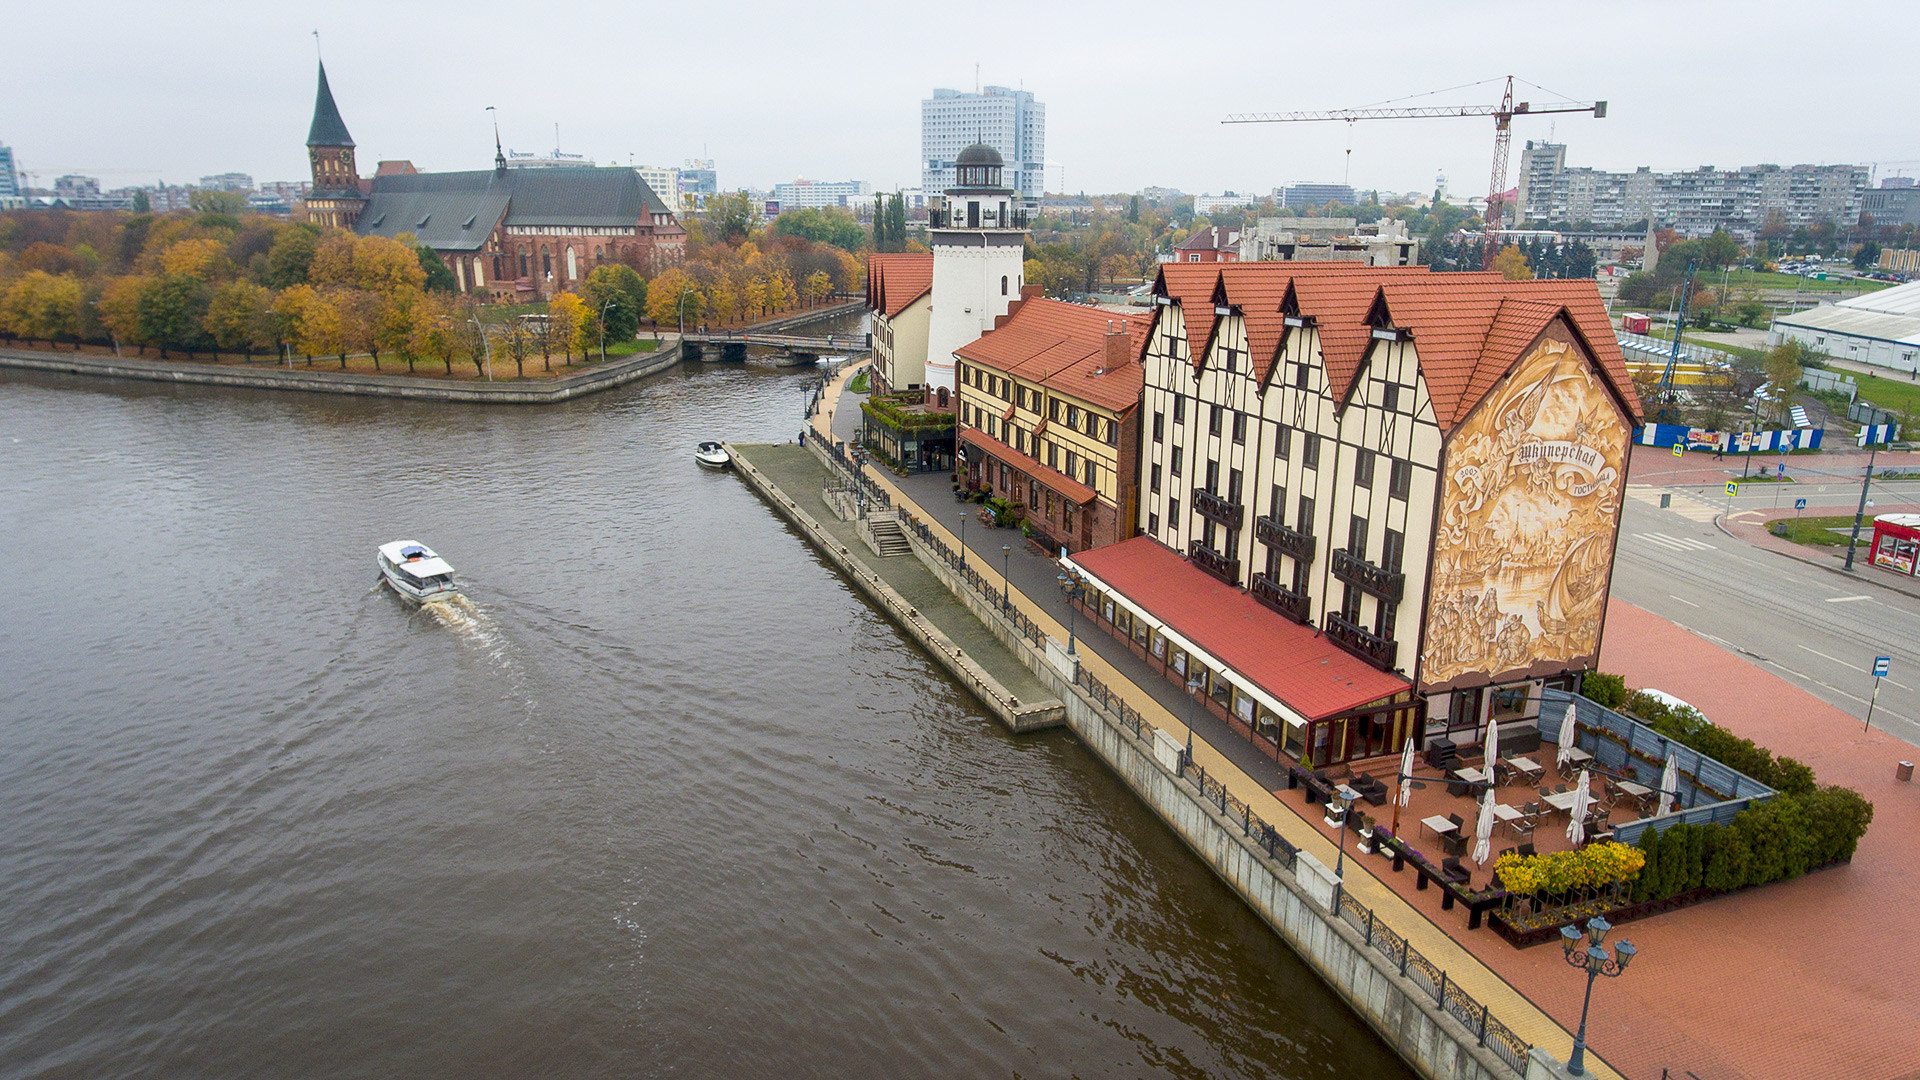 Bitcoin can save you in Kaliningrad, where a hotel room goes for at least $300 per night.